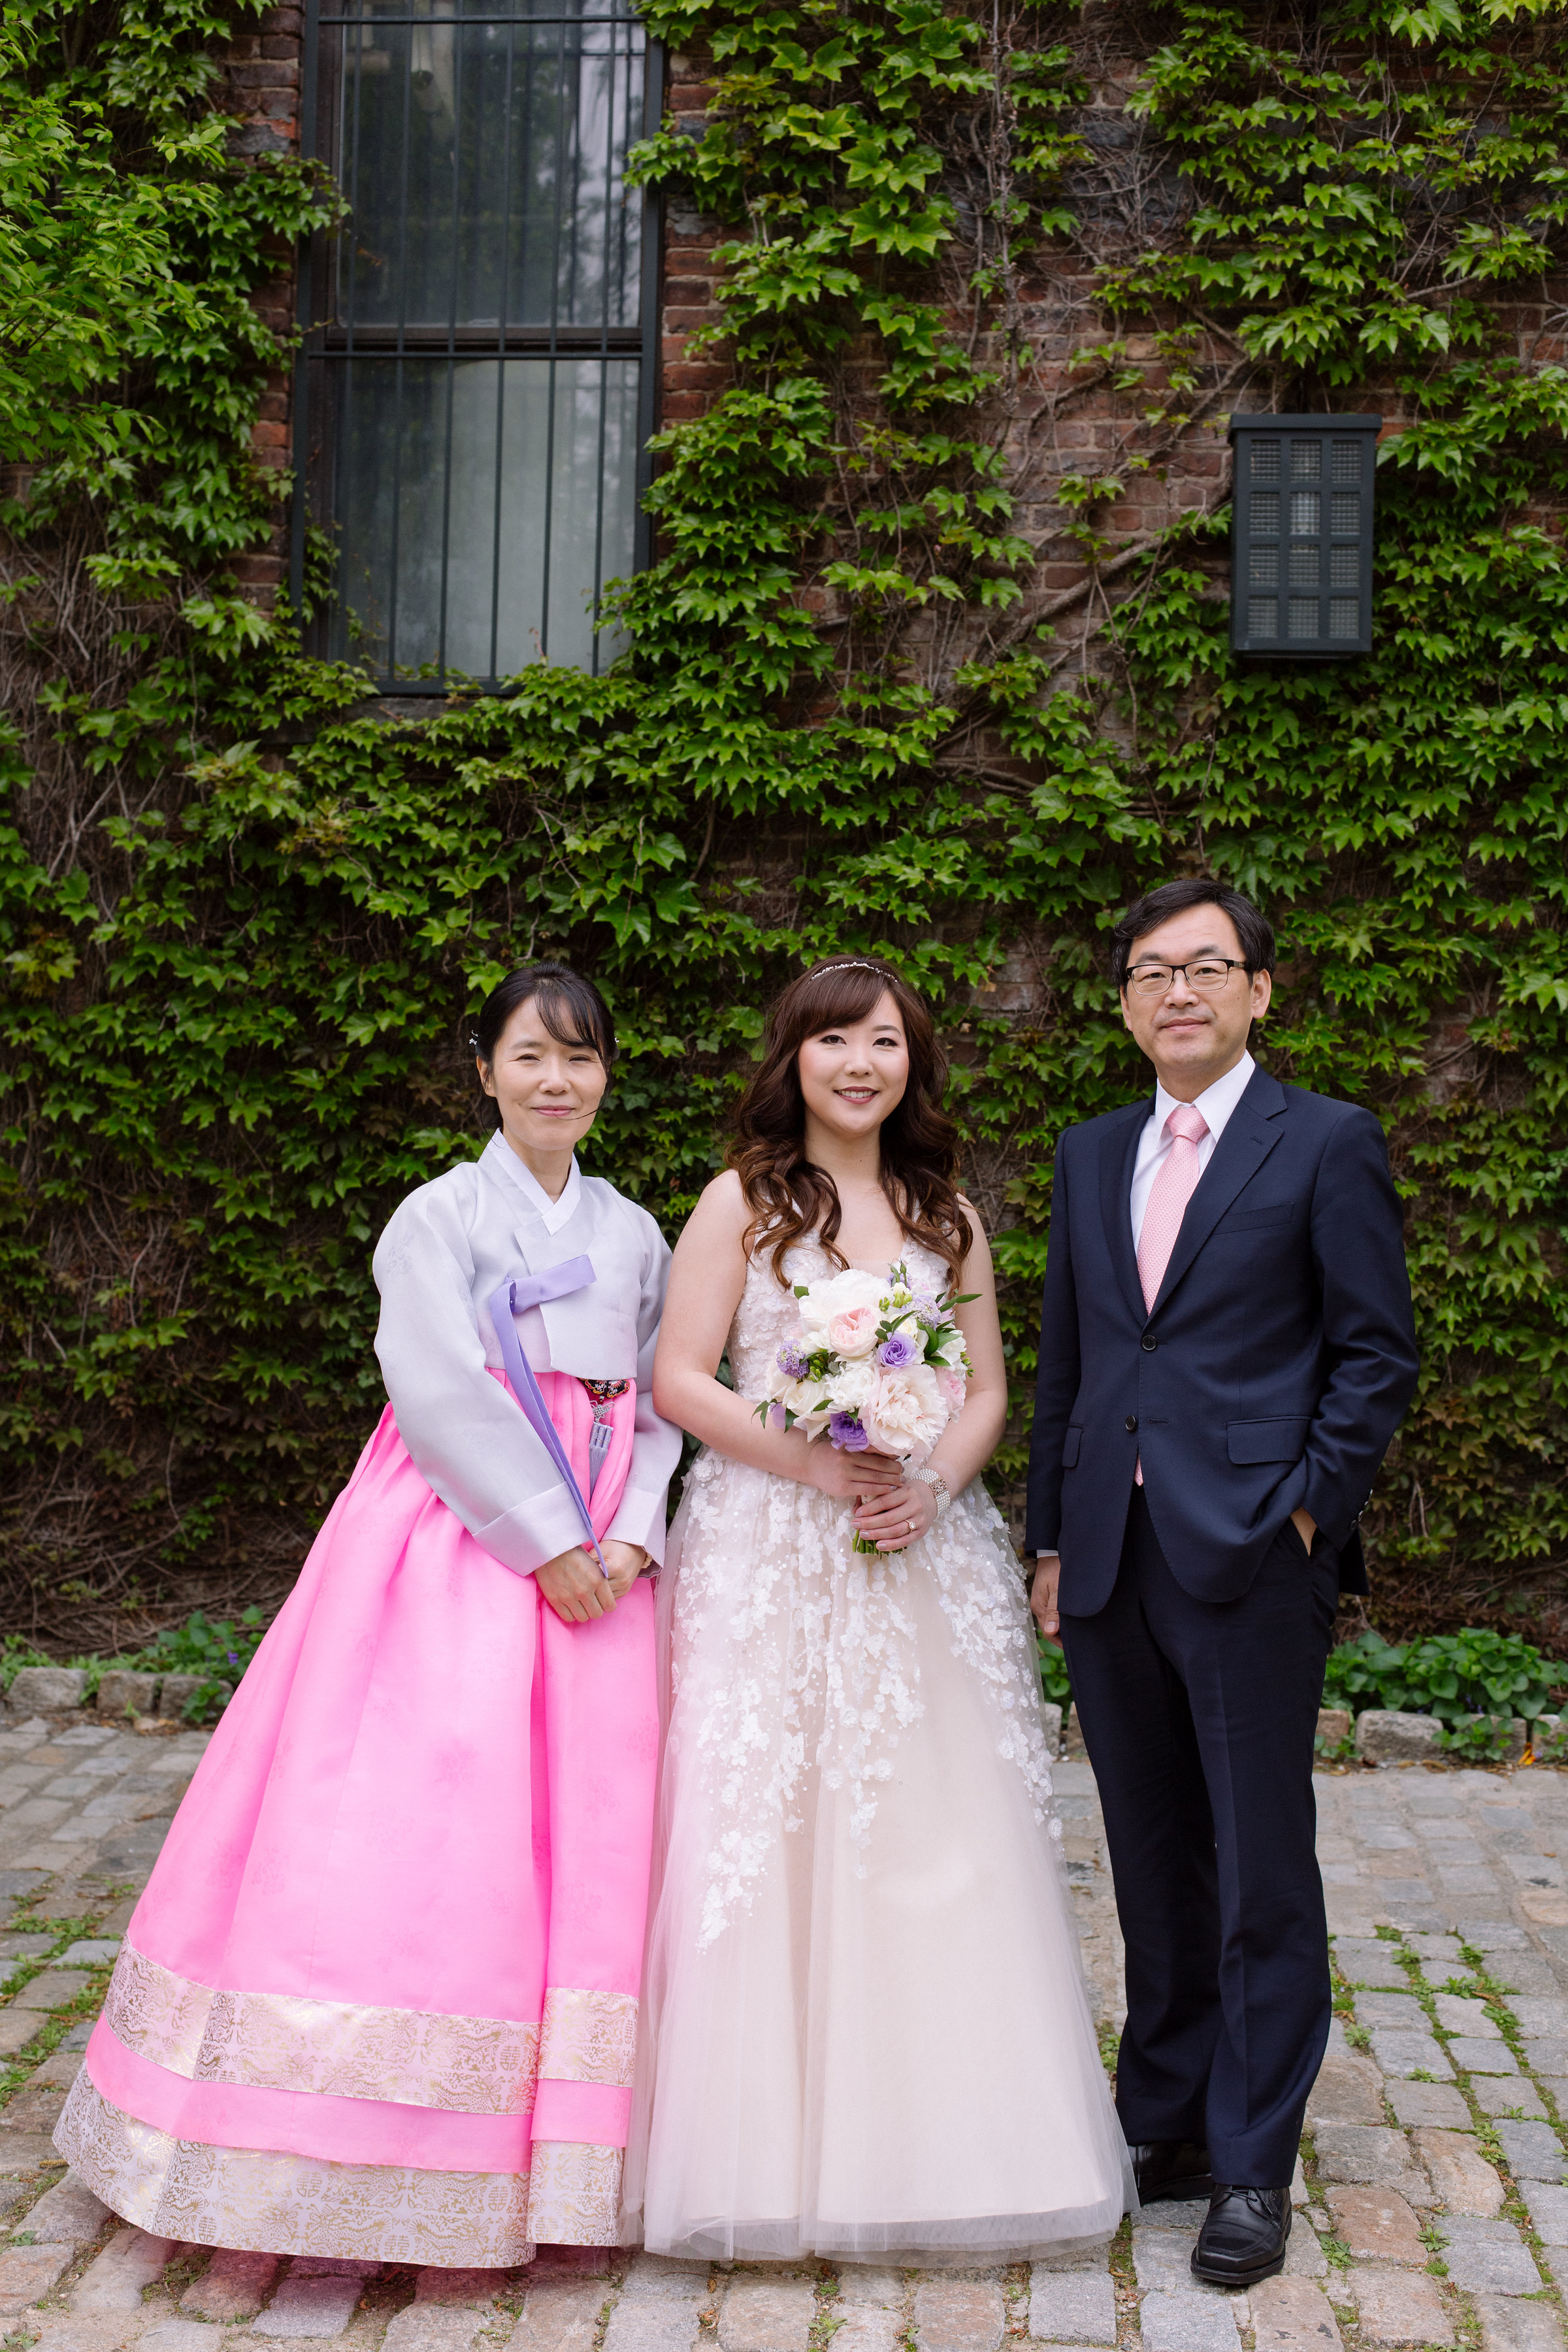 Tall & Small Events NYC, H&B, ModernIndoor Urban Industrial Multicultural Korean Spring Wedding, New York City Real Wedding at The Foundry, LIC NY. Photo: City Love Photography